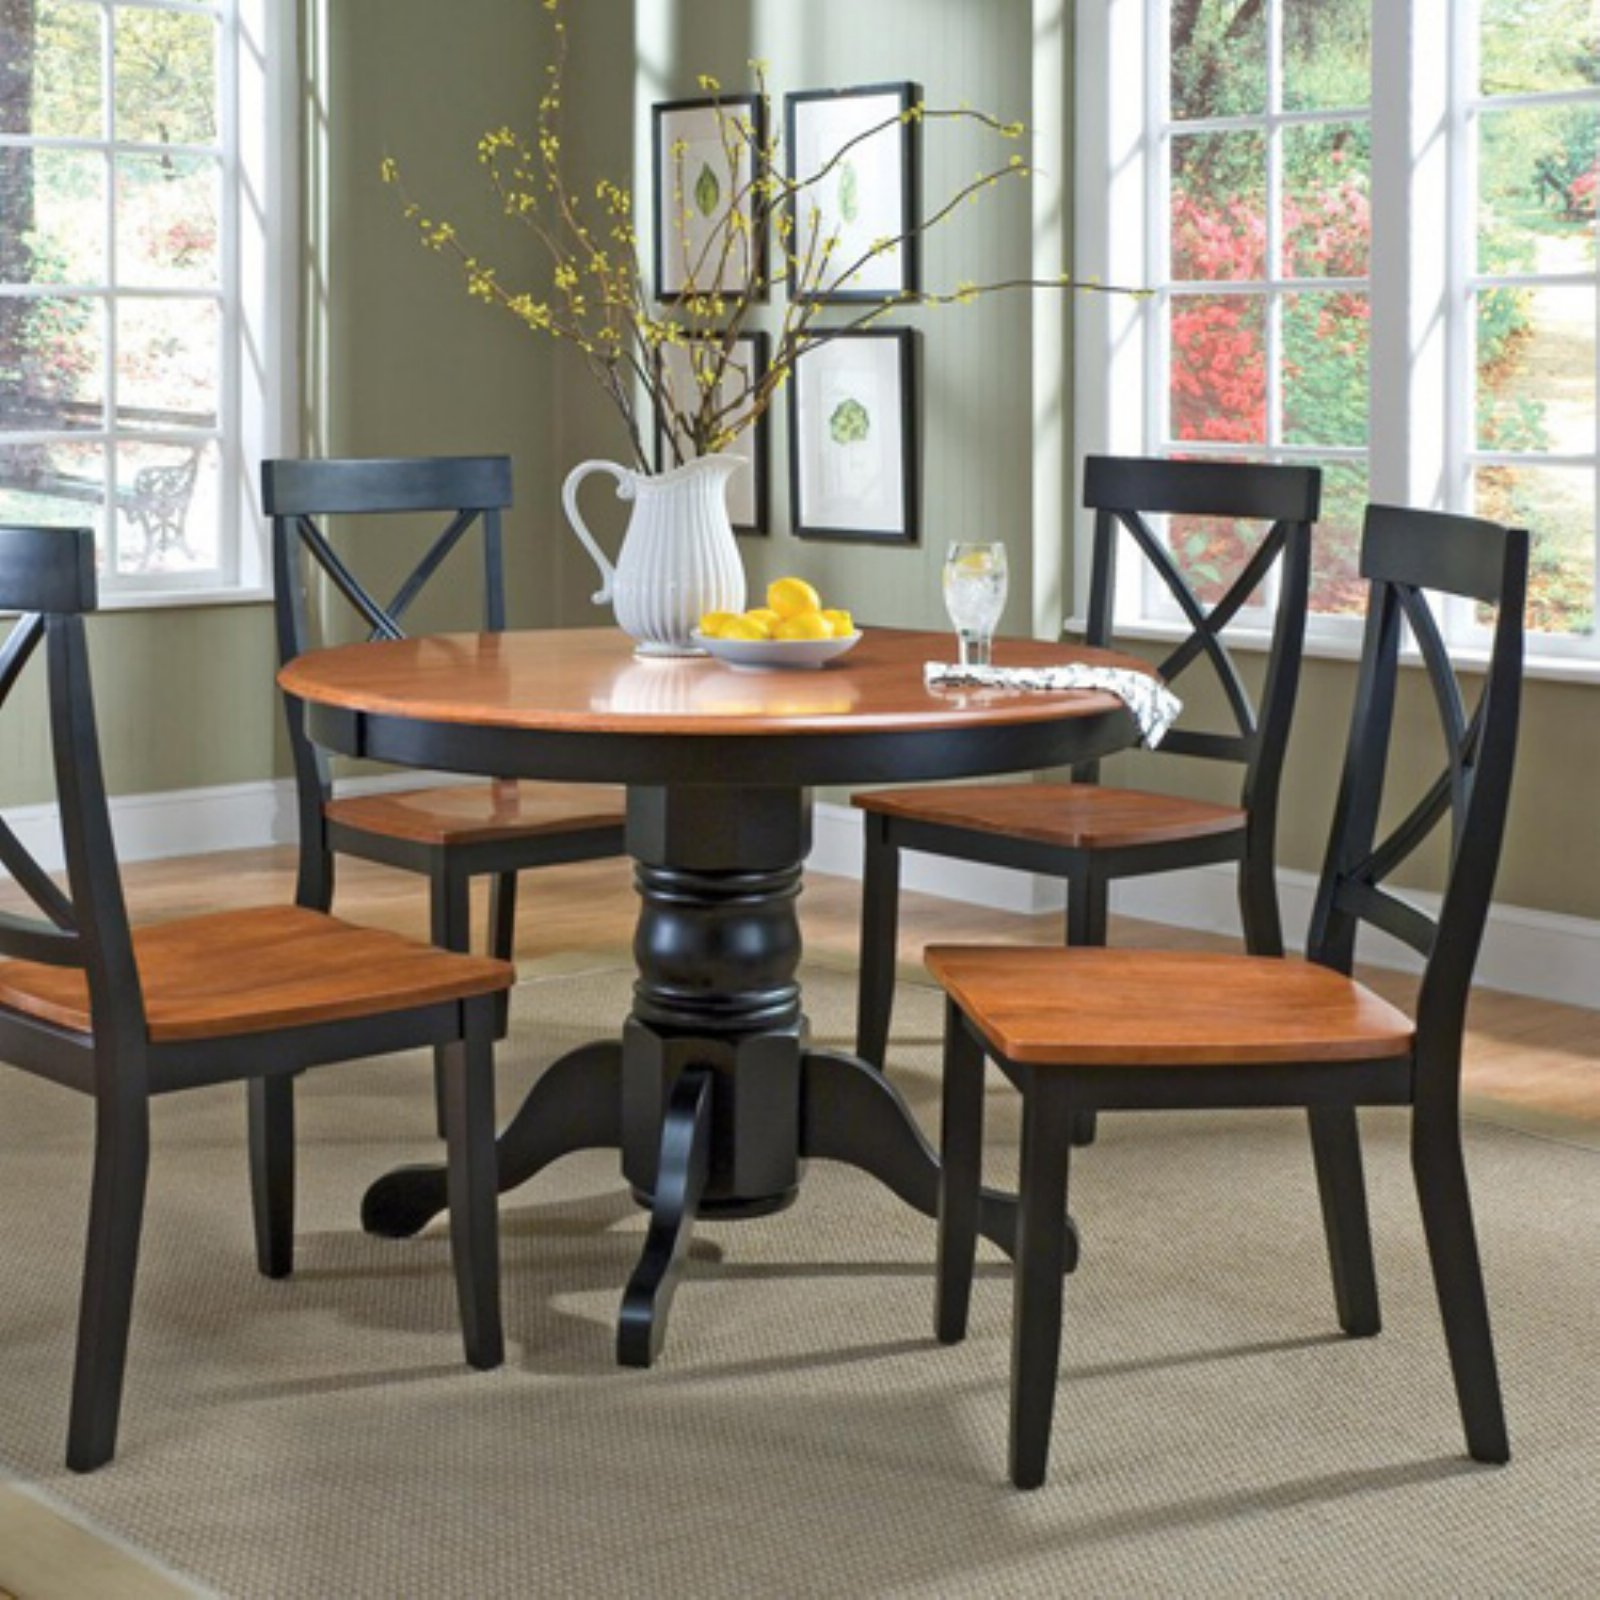 Homestyles 5 Piece Dining Set Black And Cottage Oak Finish